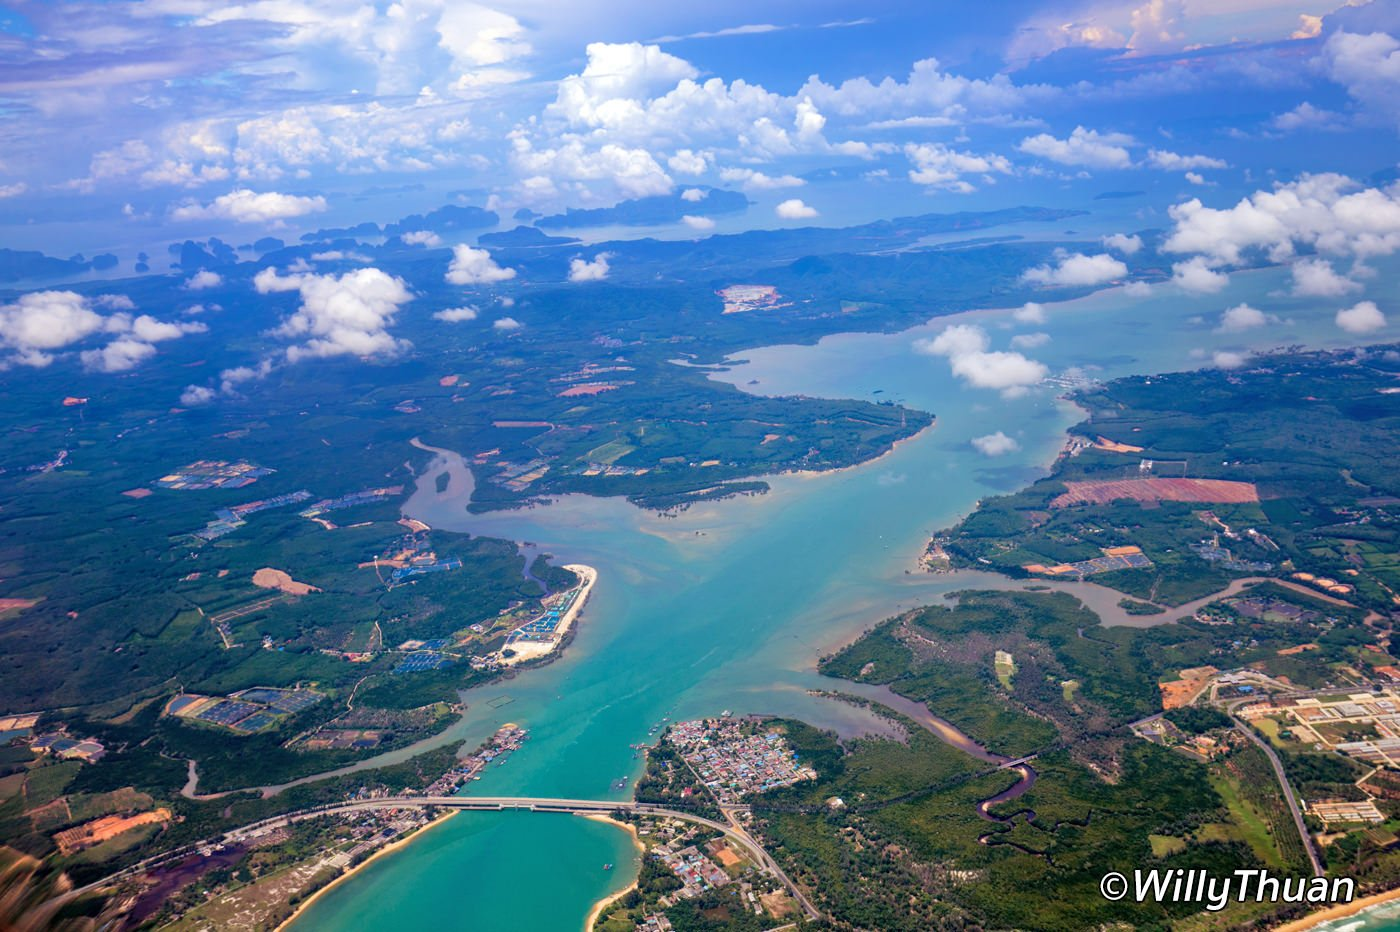 the sarasin bridge seen from the sky